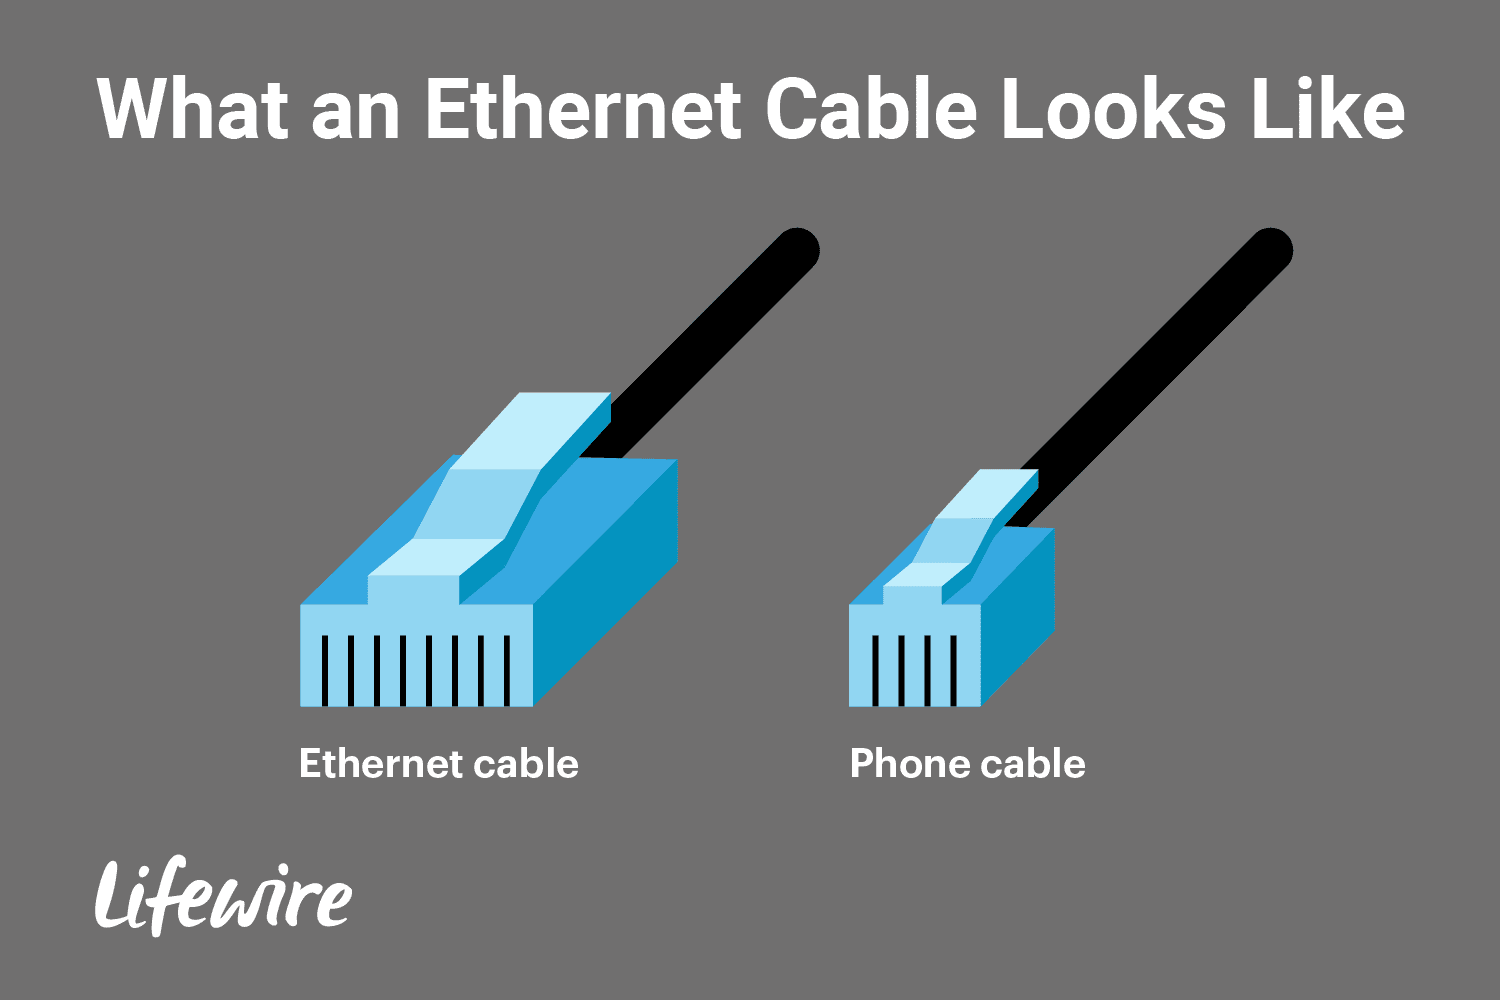 An illustration of an Ethernet cable next to a phone cable to show how an Ethernet cable is larger.